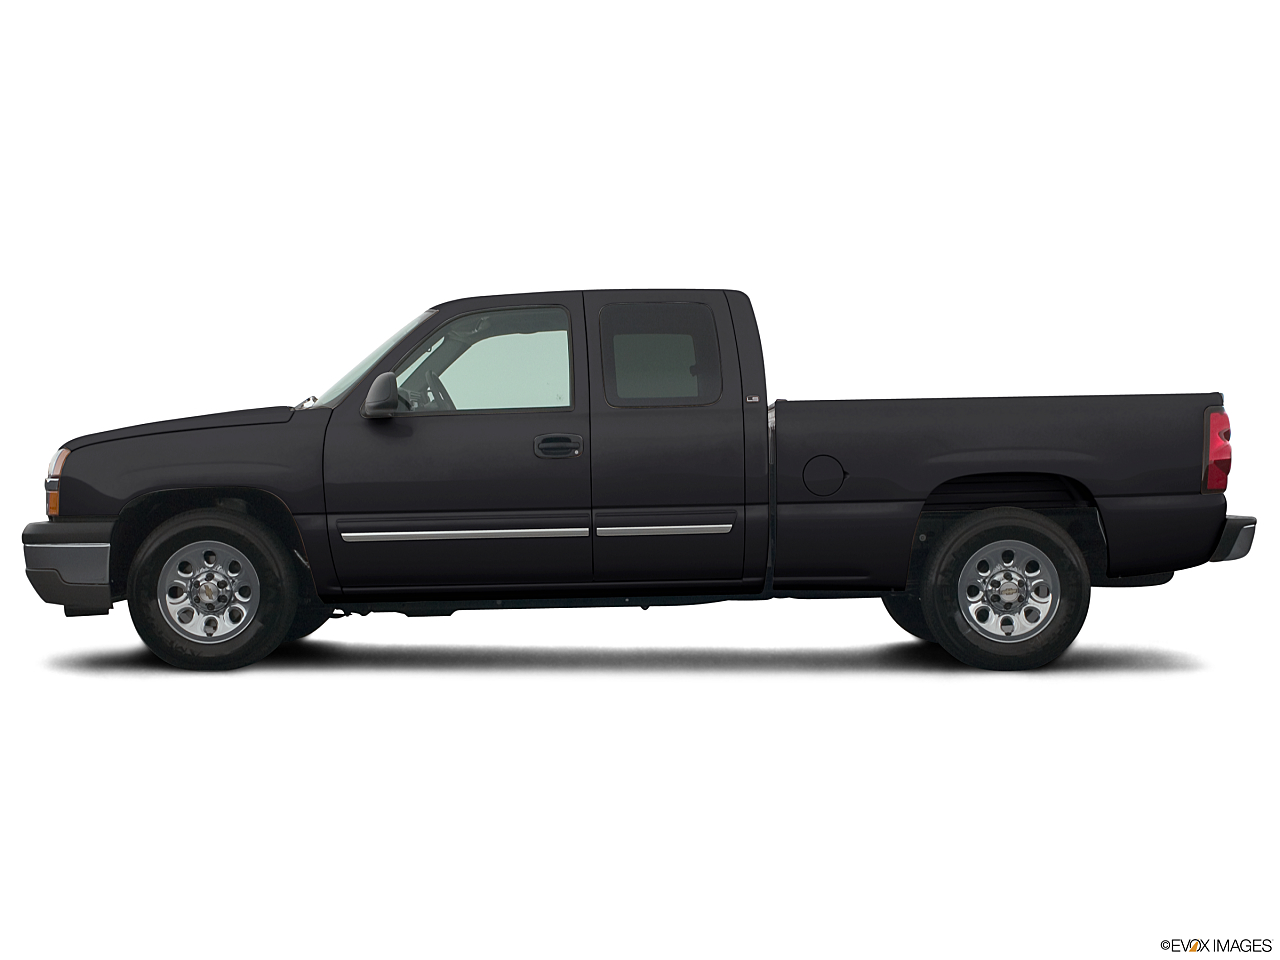 2005 chevrolet silverado 1500 4dr extended cab work truck rwd sb research groovecar